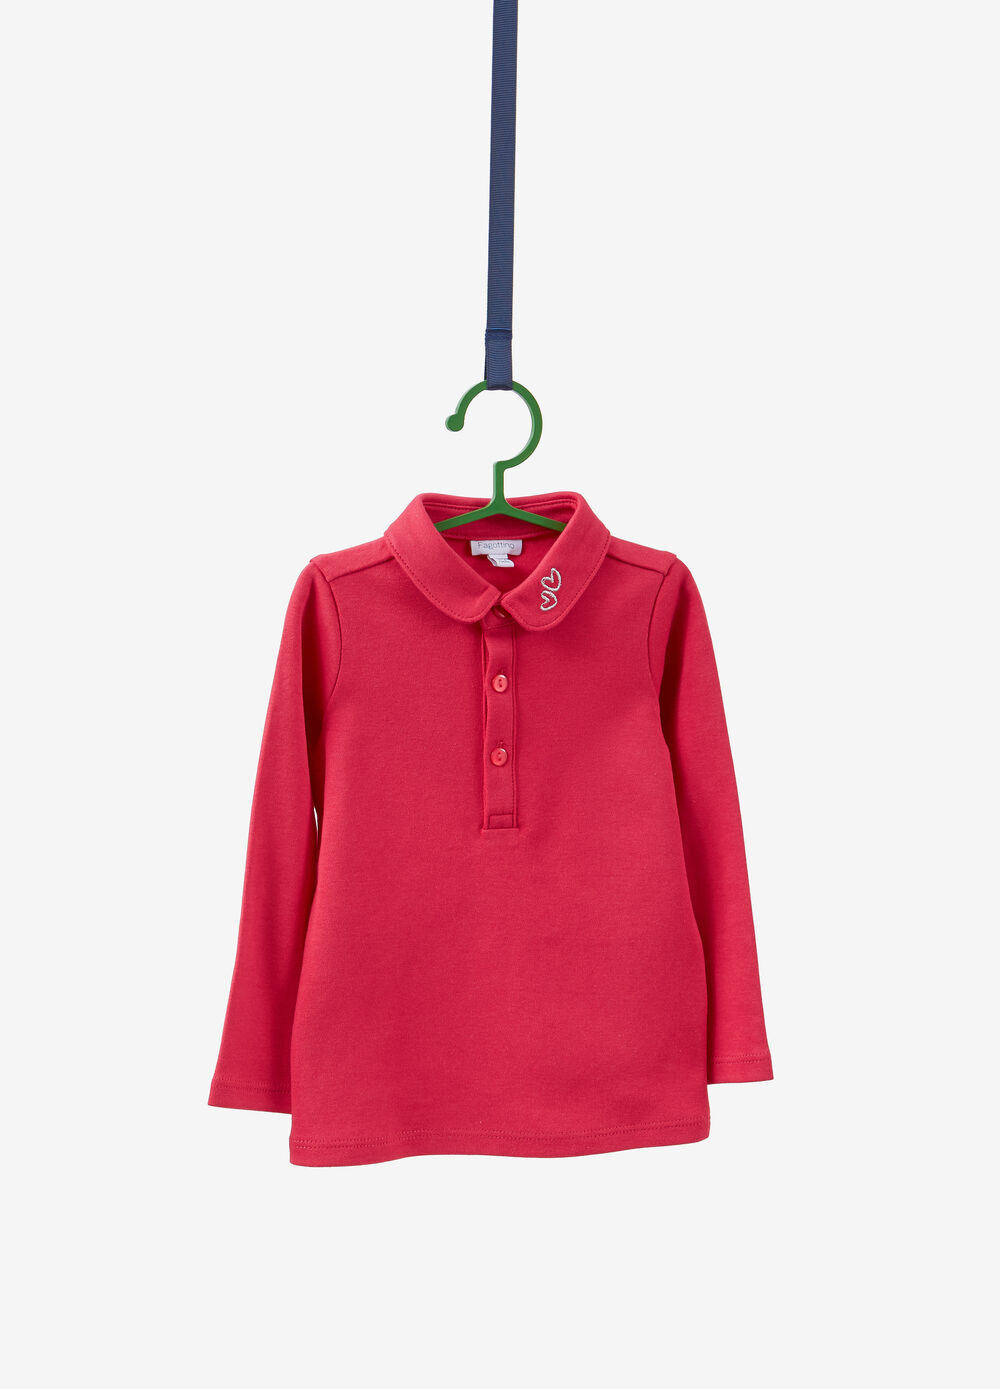 Baby Girls Polo Shirts Sale Discounts And Promotions With Up To 30